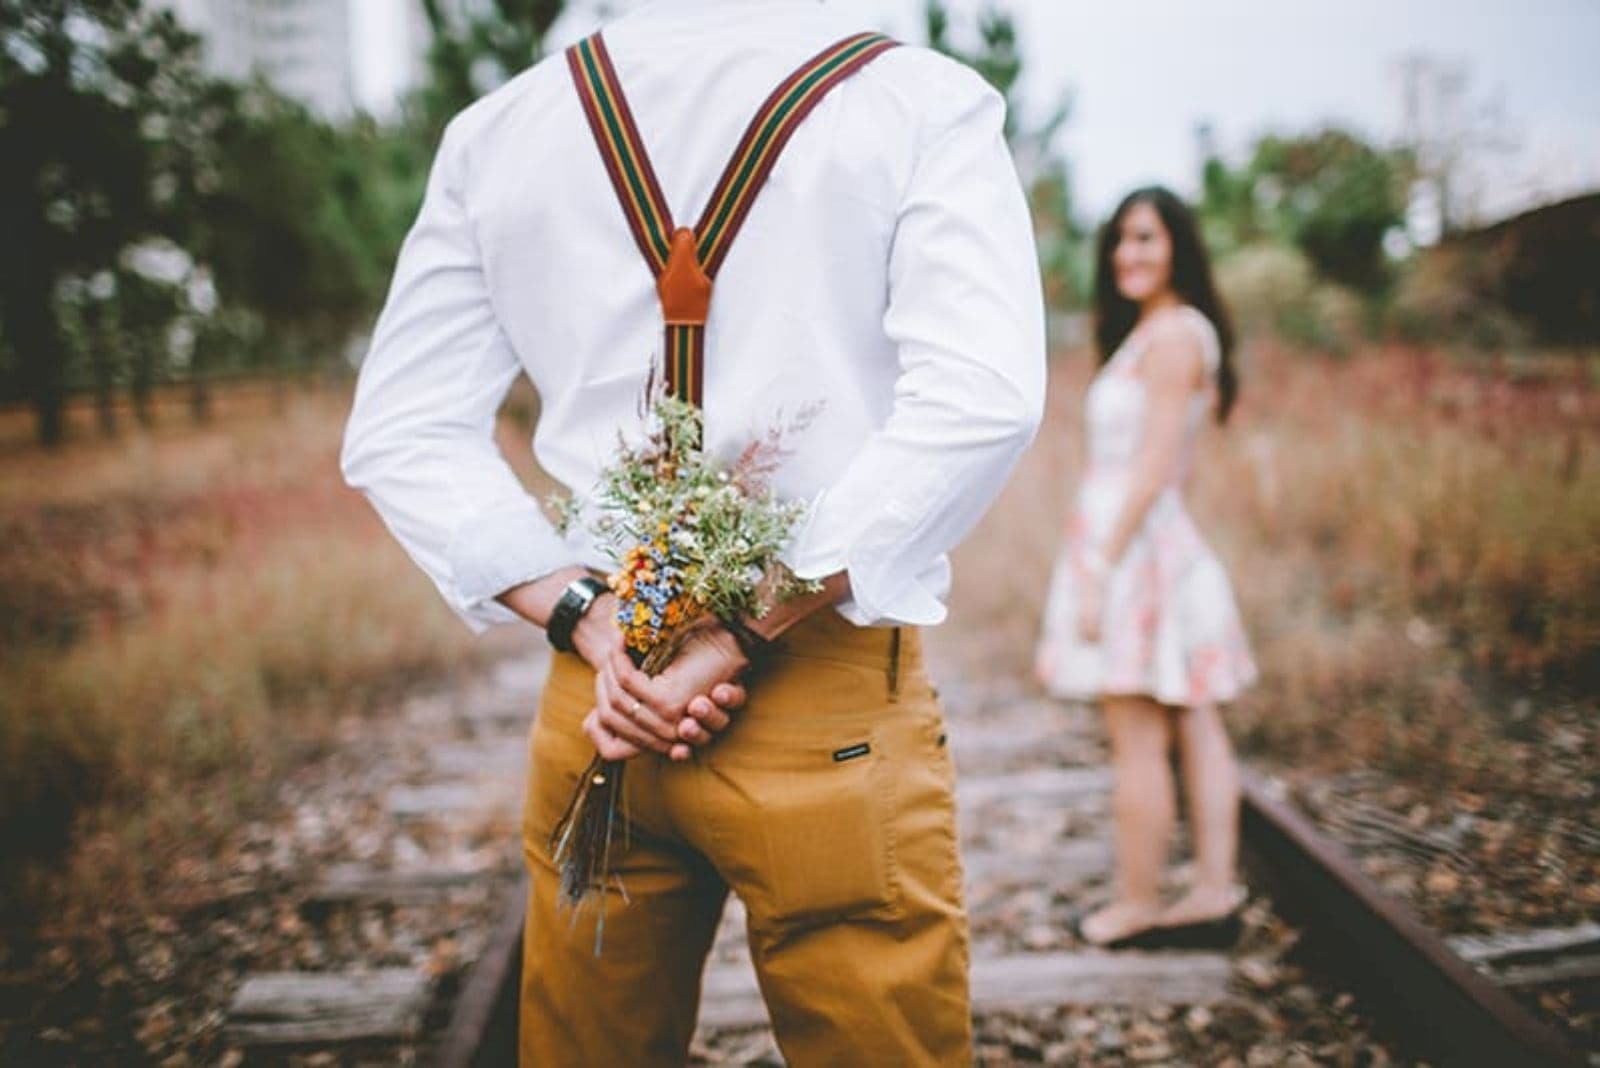 a man bought a bouquet of roses for a woman